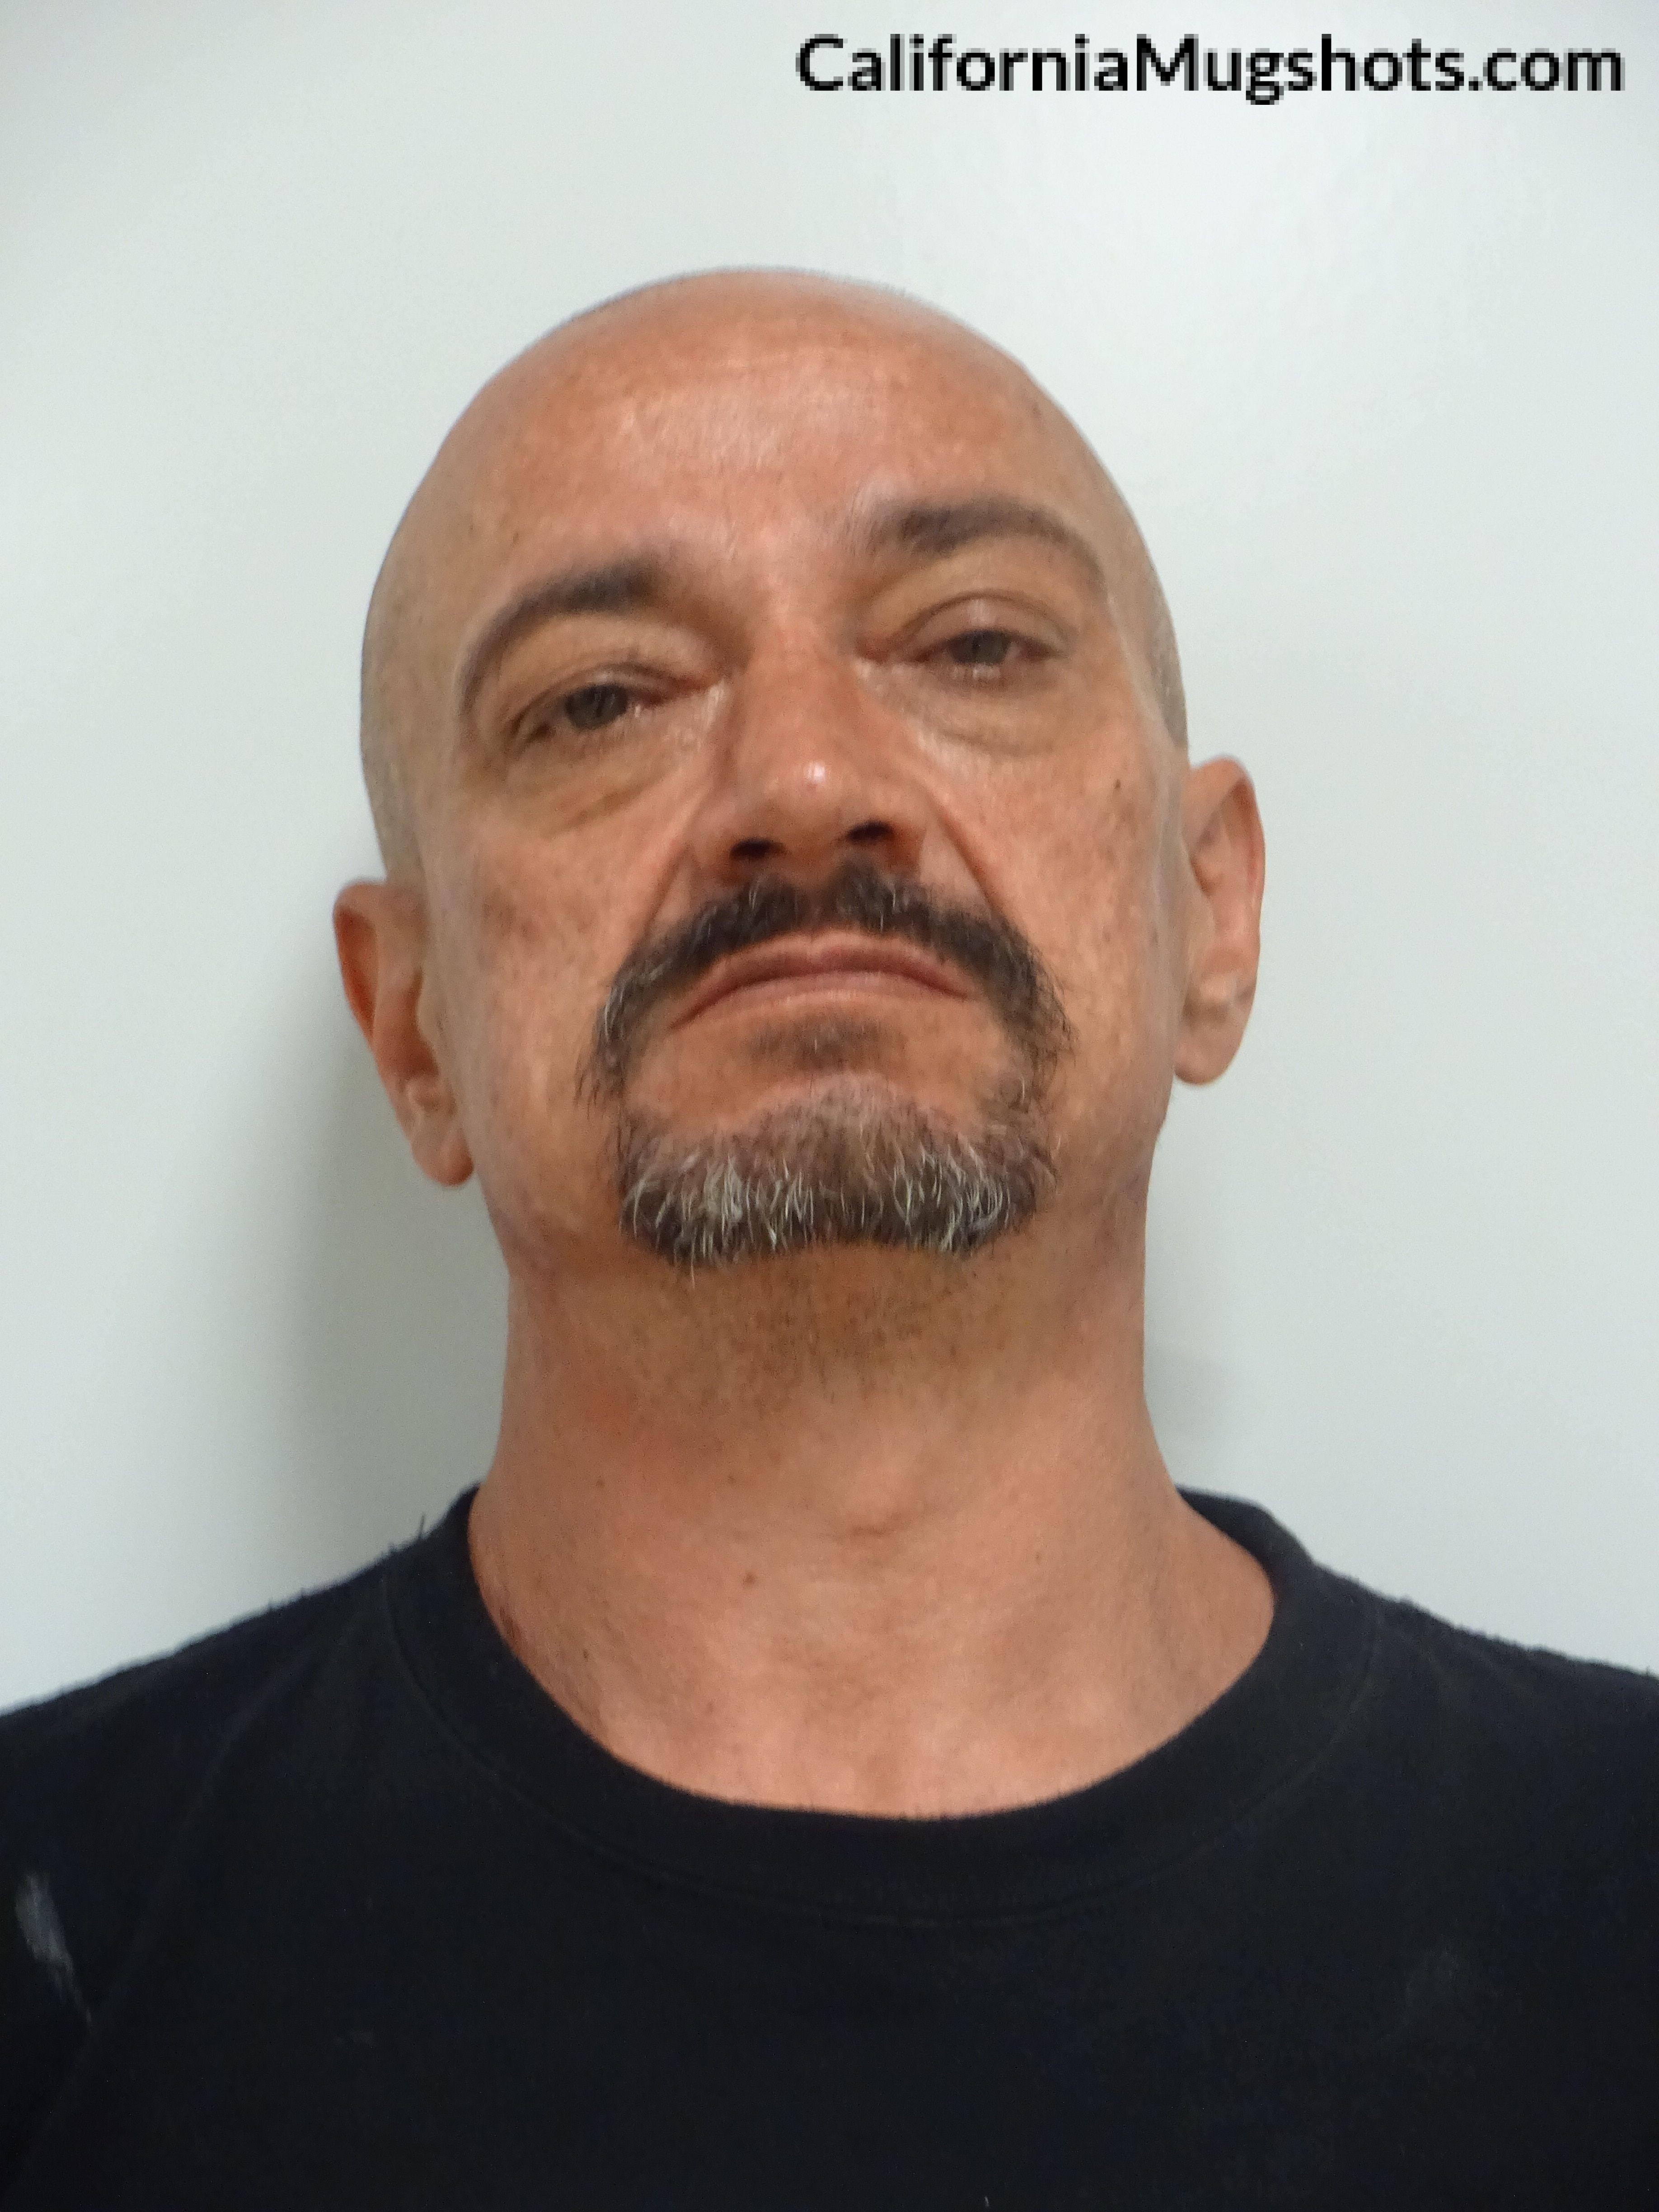 Joseph Dean Swaney arrested in Lake County,CA